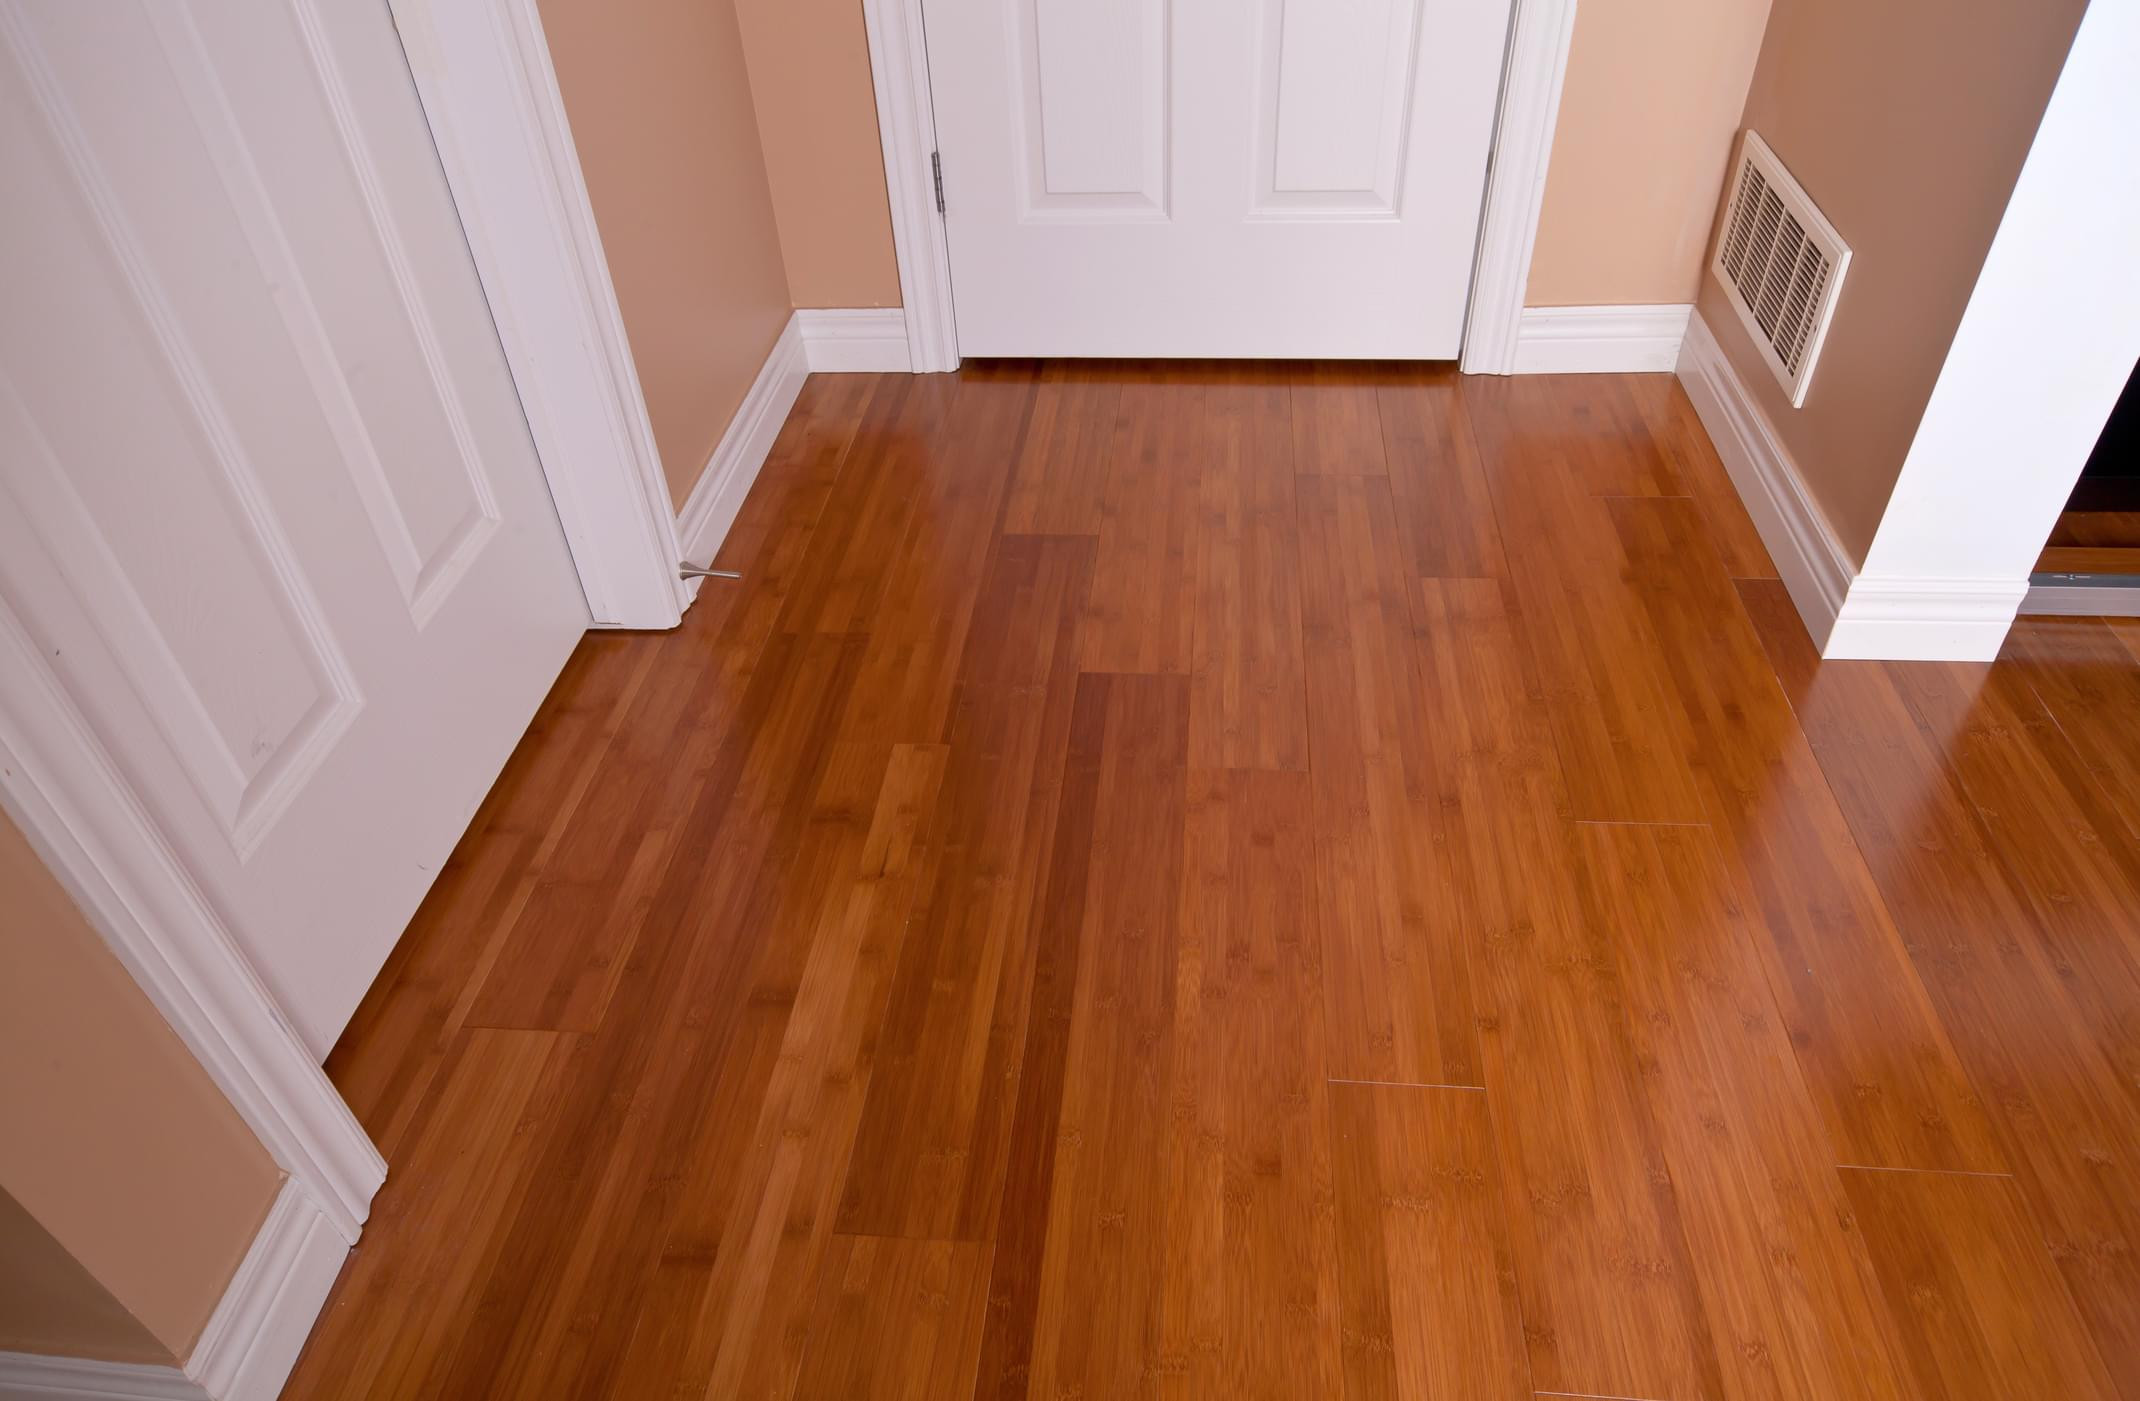 calculate hardwood flooring square footage of downriver carpet flooring with hardwood request your free in home estimate no high pressure sales no strings attached